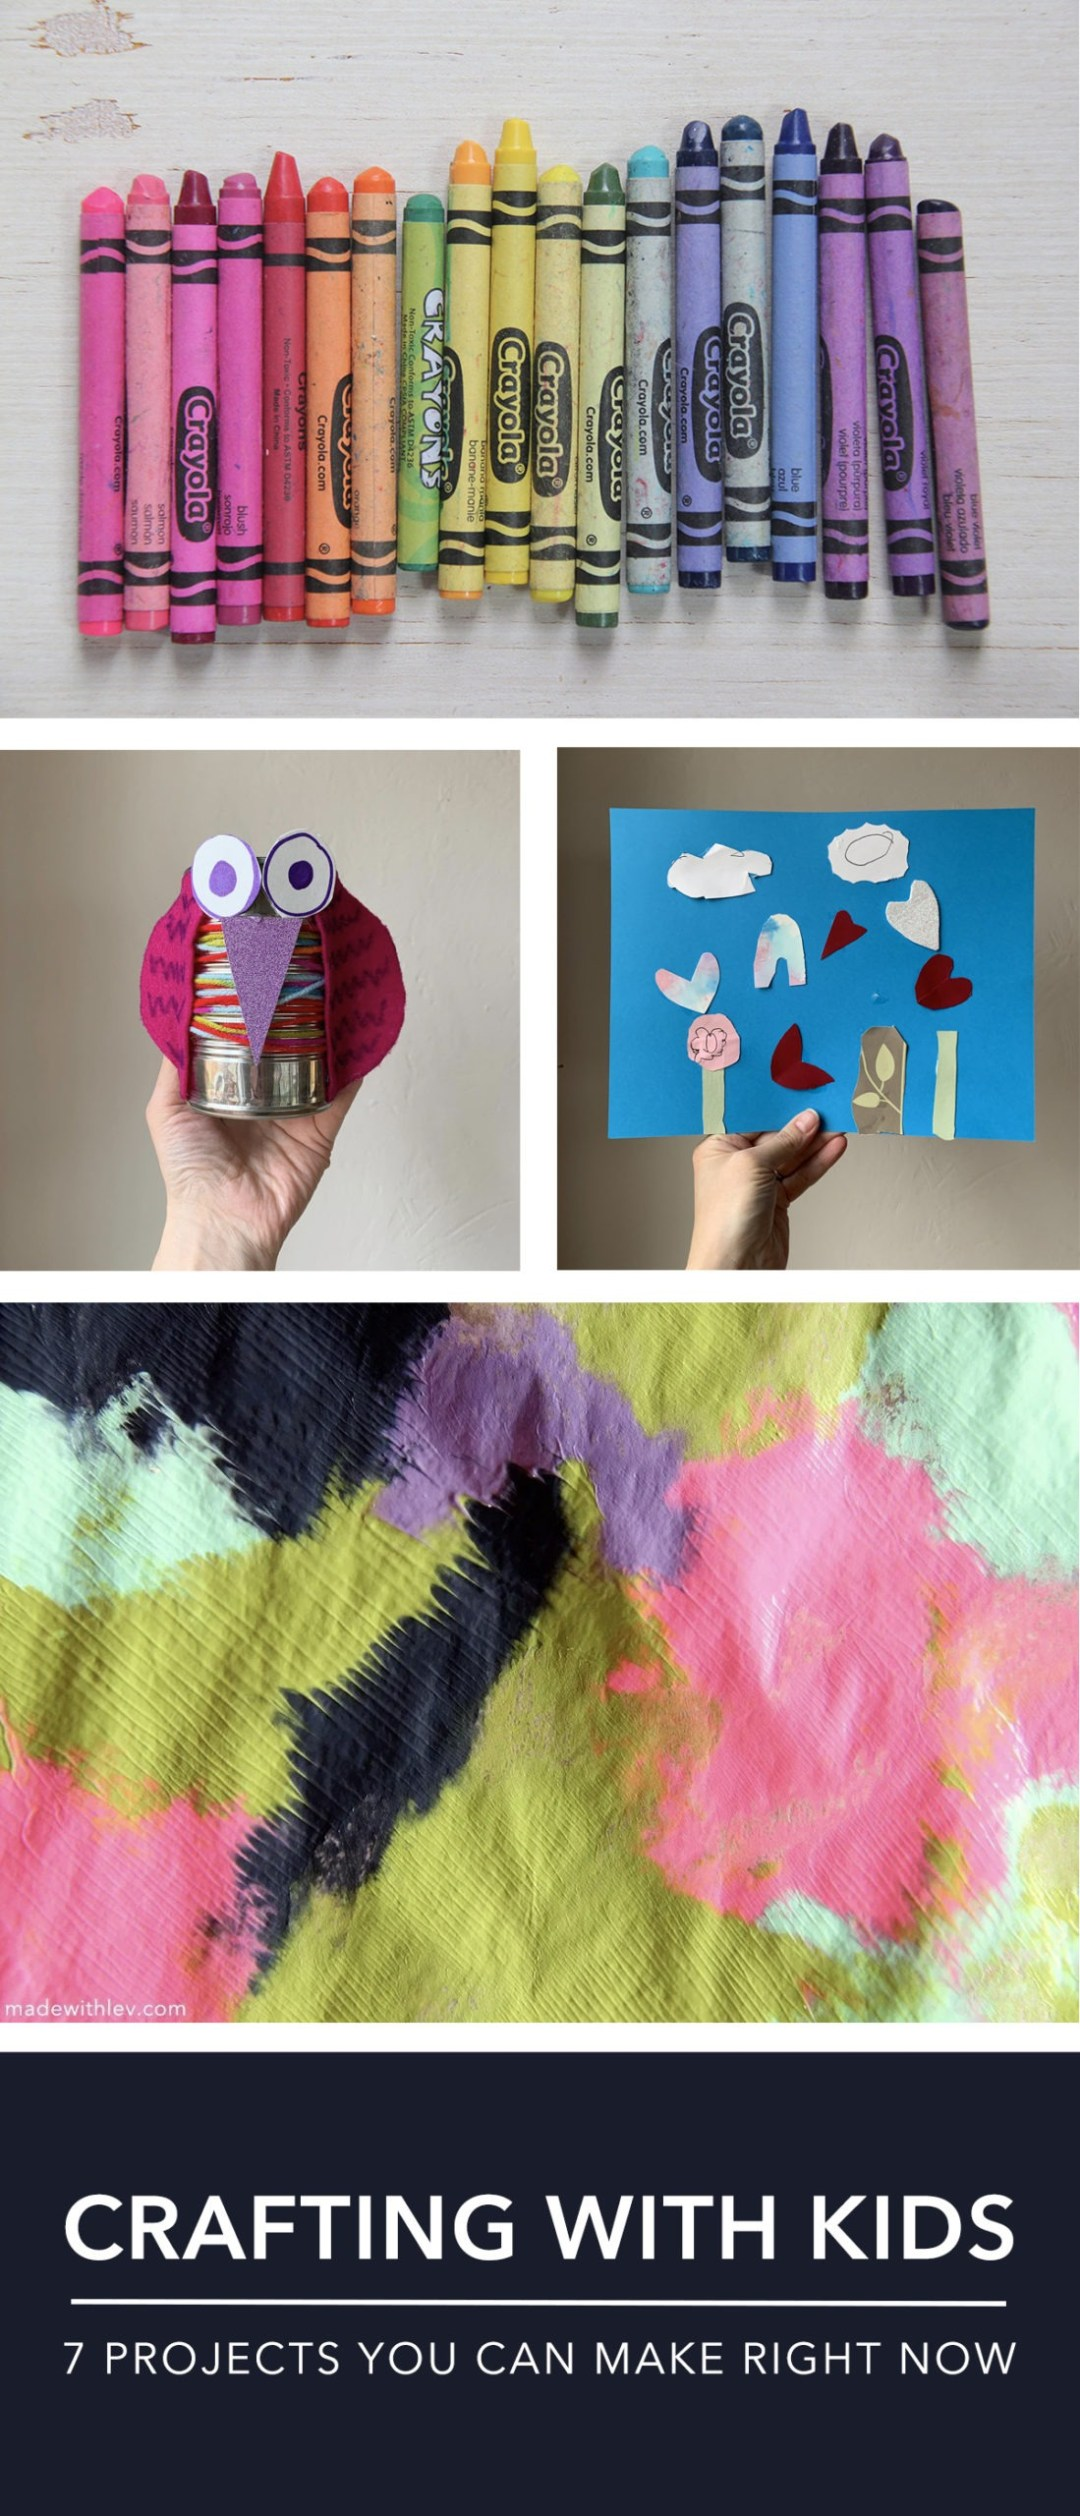 Crafting with kids: 7 projects you can make right now with things you already have in your home. #kidscrafts #craftingwithkids #papercrafts #kidsart #elementaryaged #kindergarten